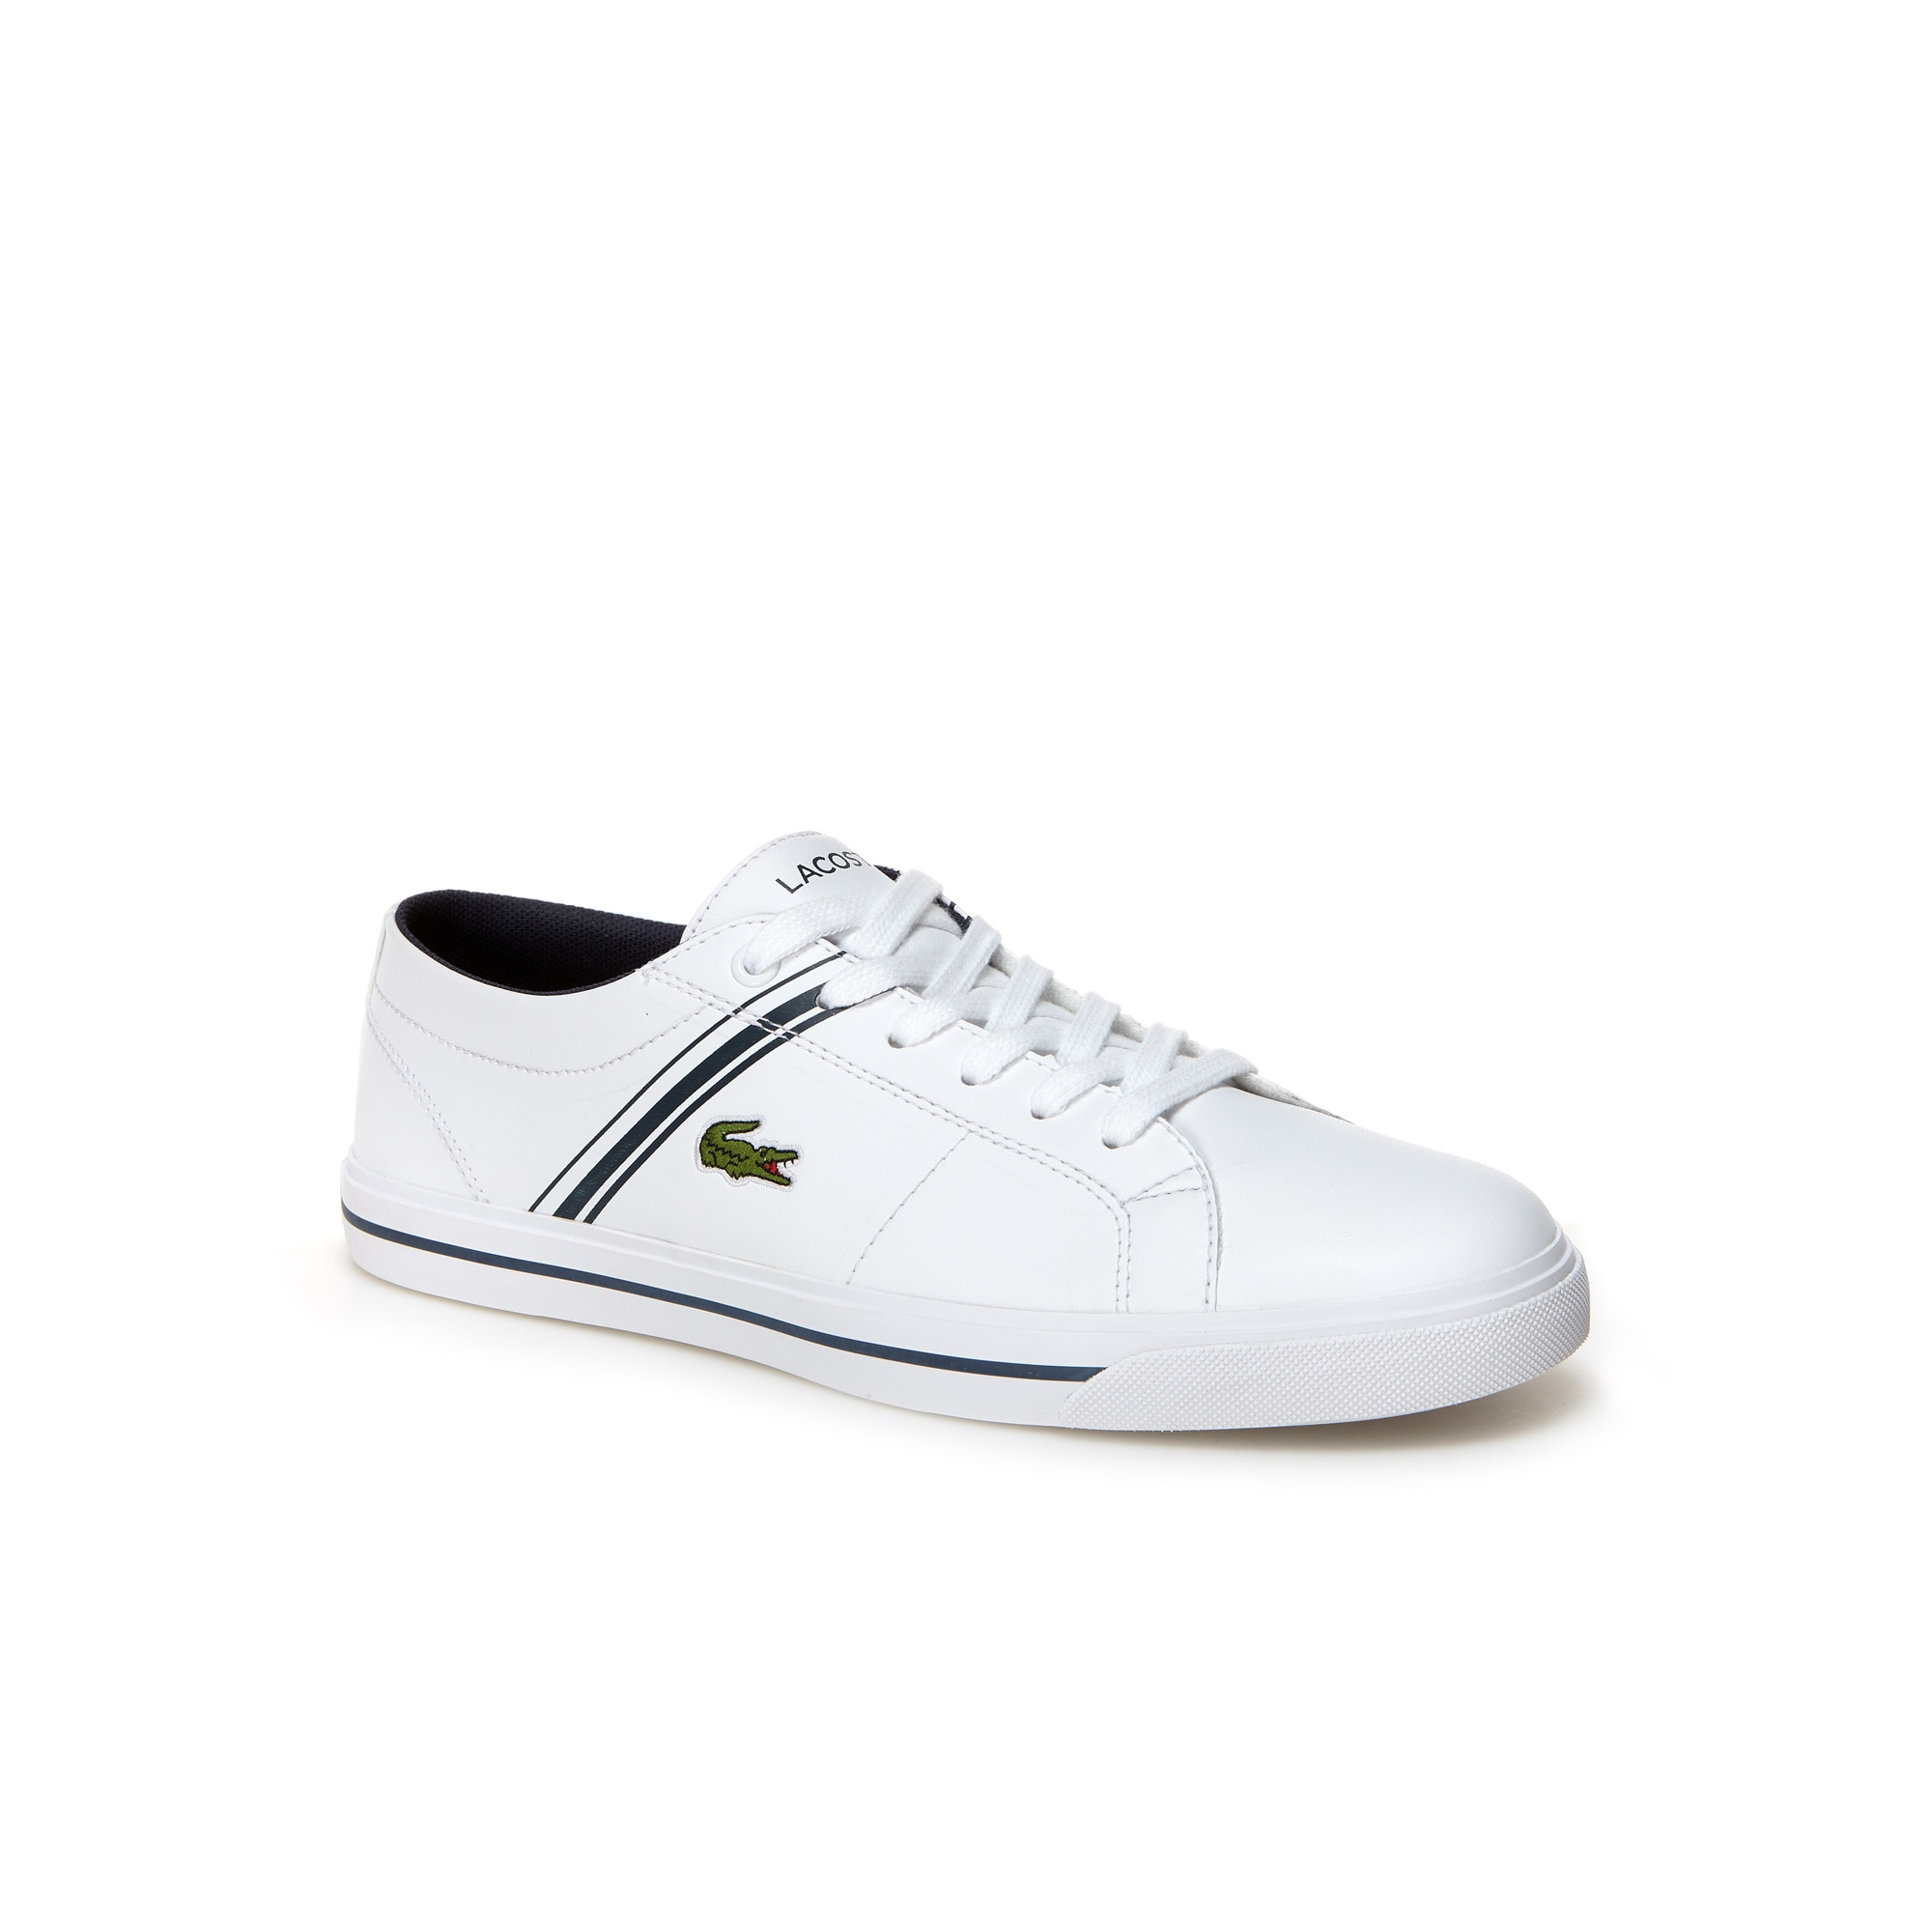 Teen-Sneakers RIBERAC in Leder-Optik